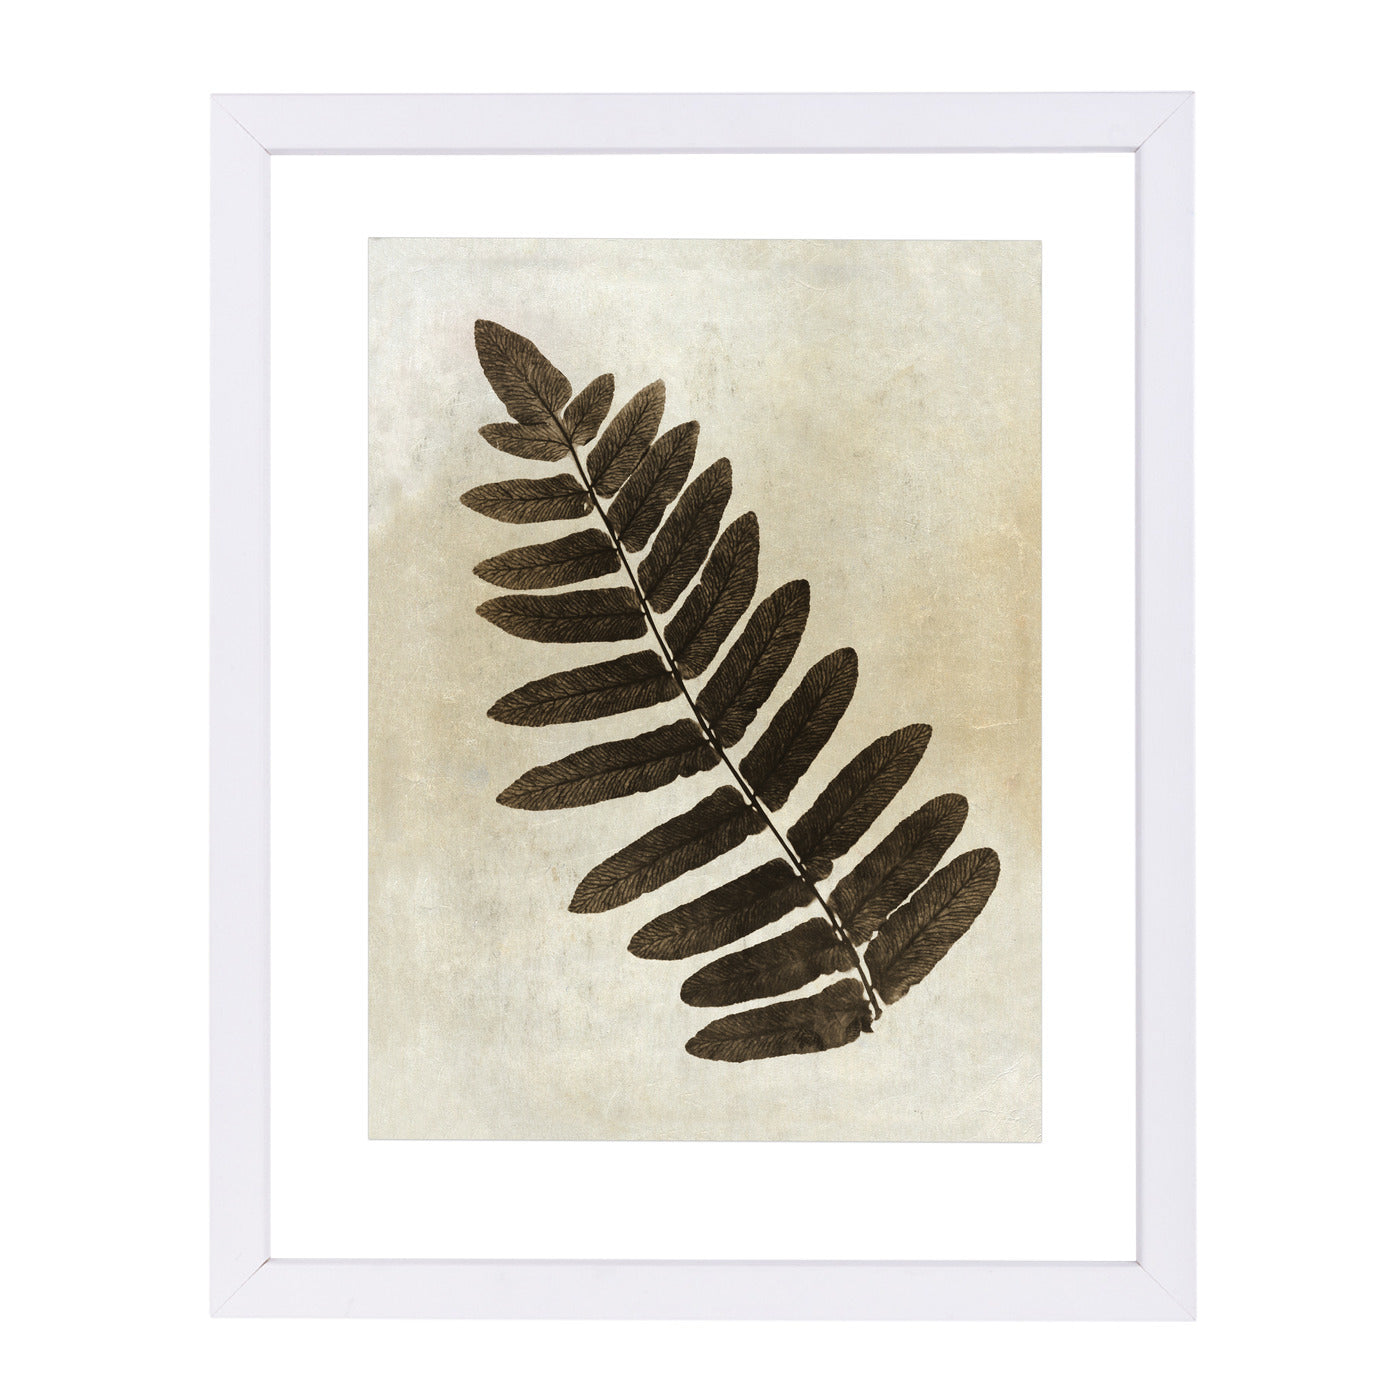 Sepia Leaf Collage Ii By Chaos & Wonder Design - White Framed Print - Wall Art - Americanflat